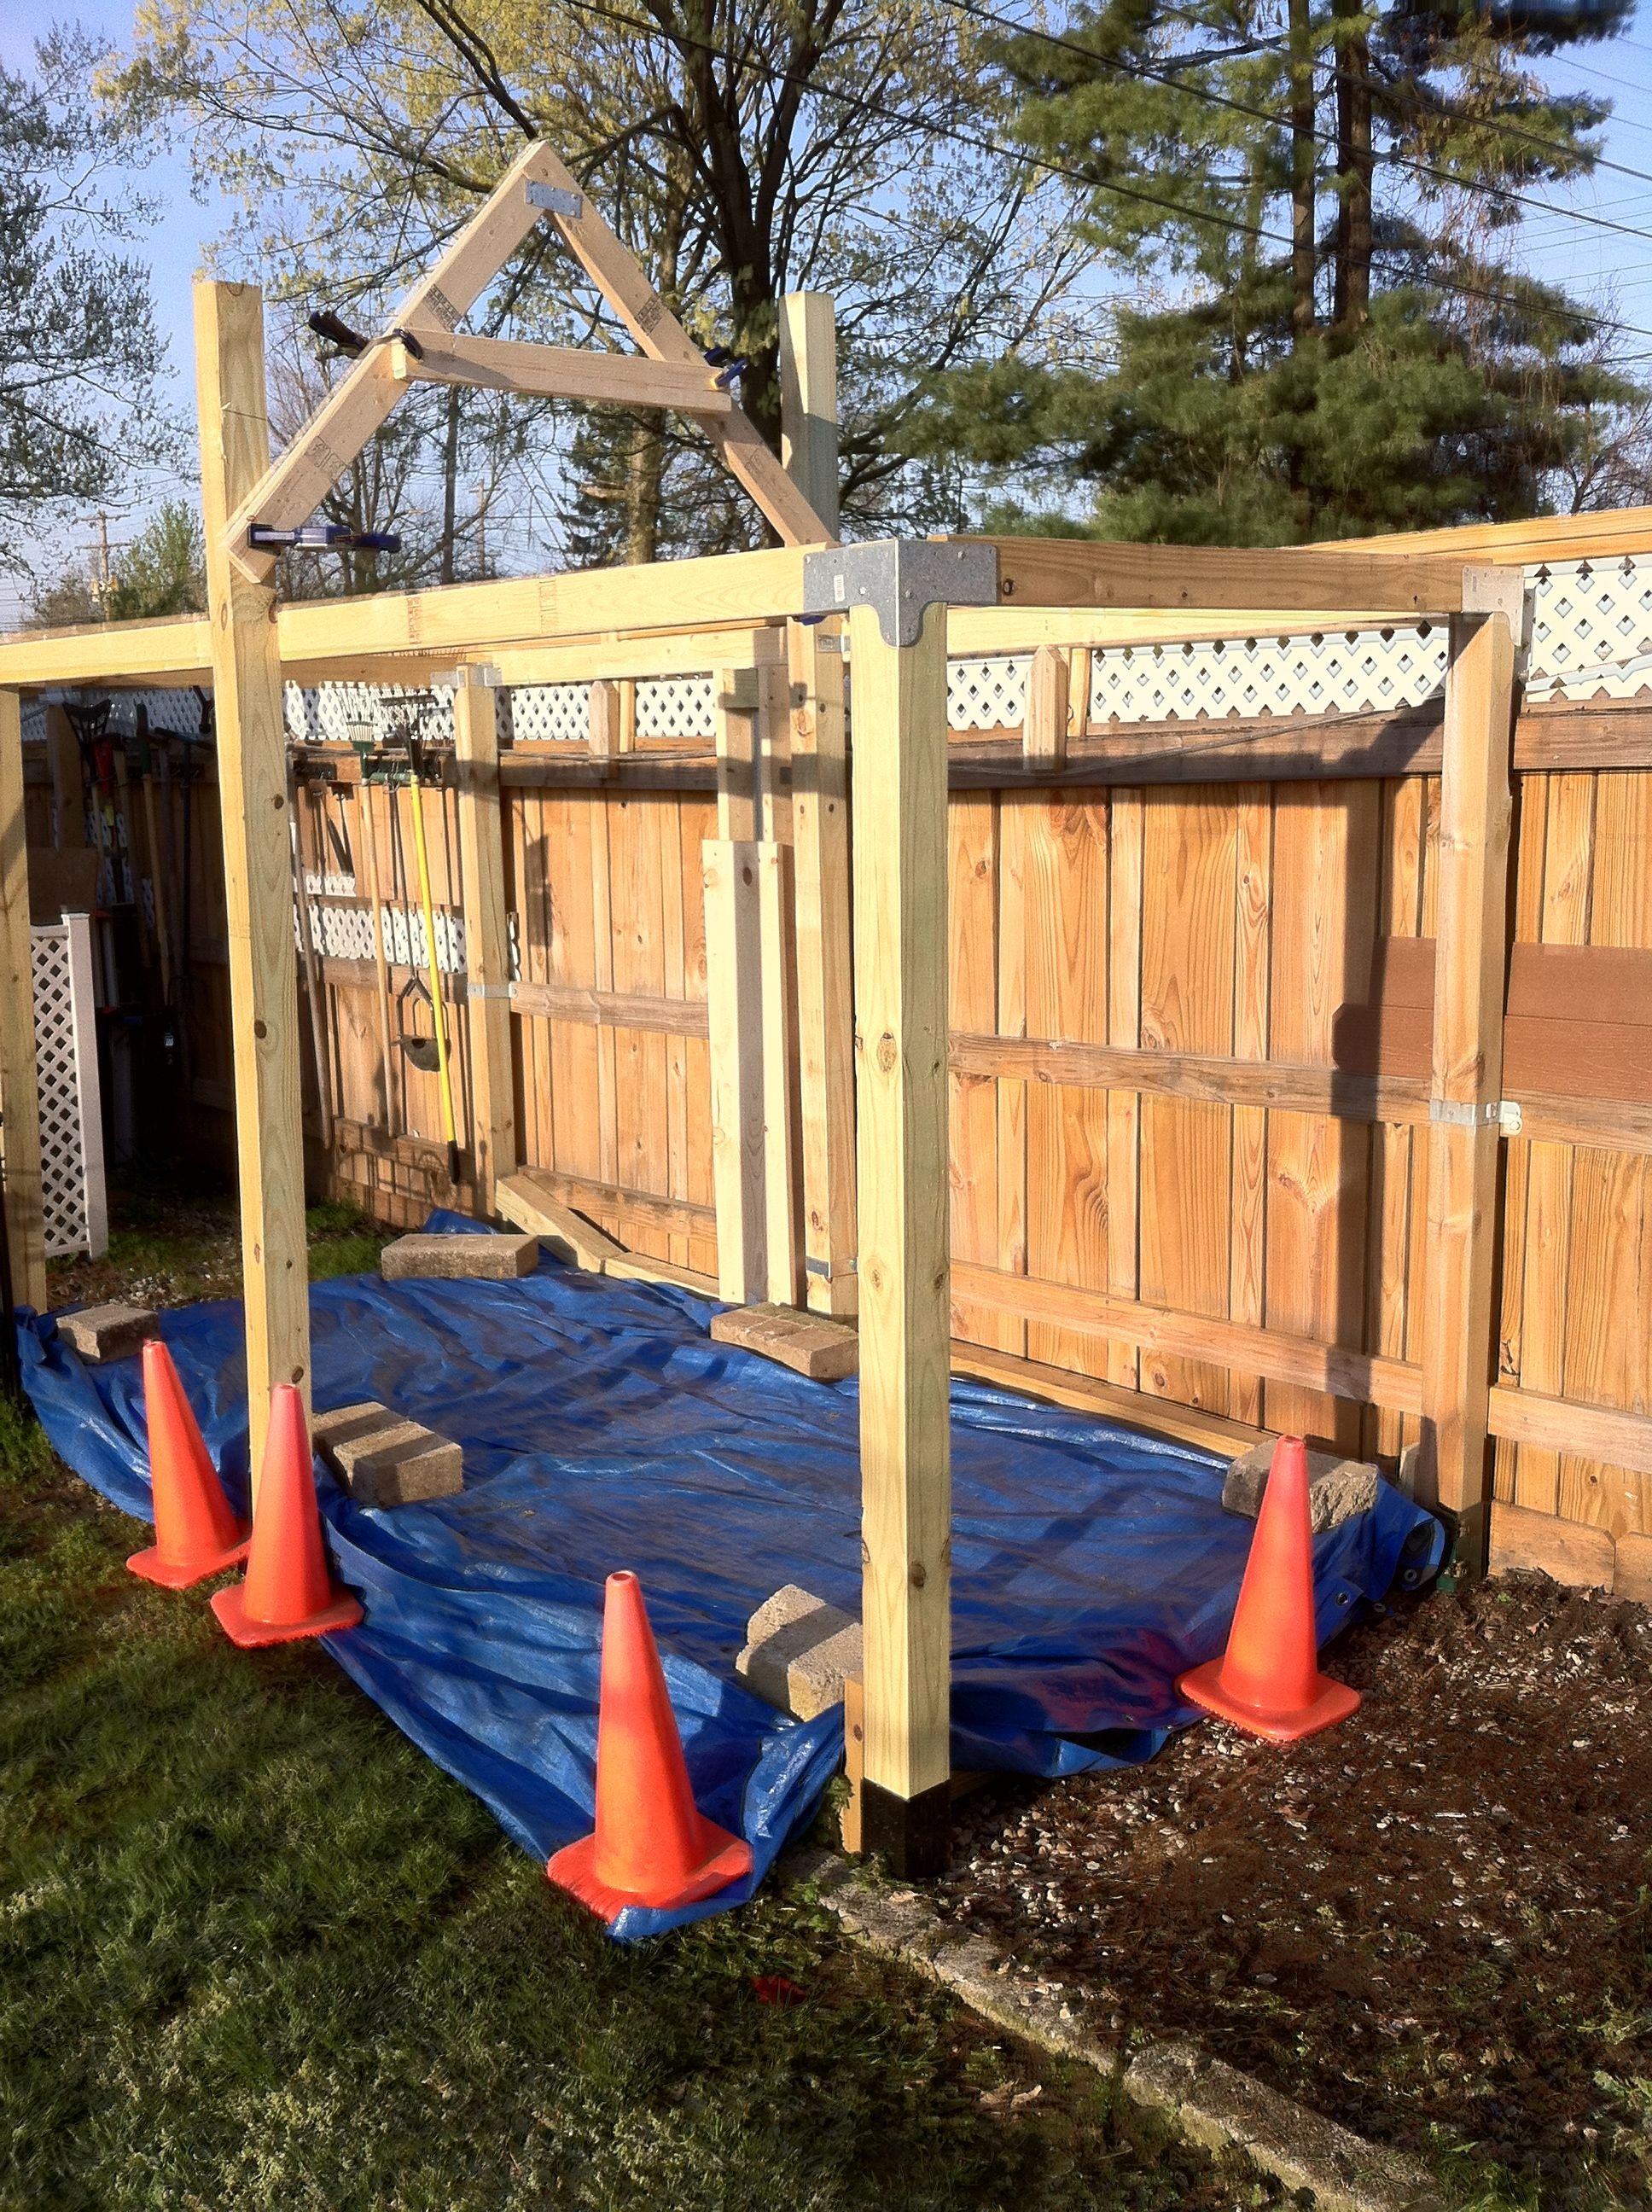 the 1st stage of building the small storage tool shed